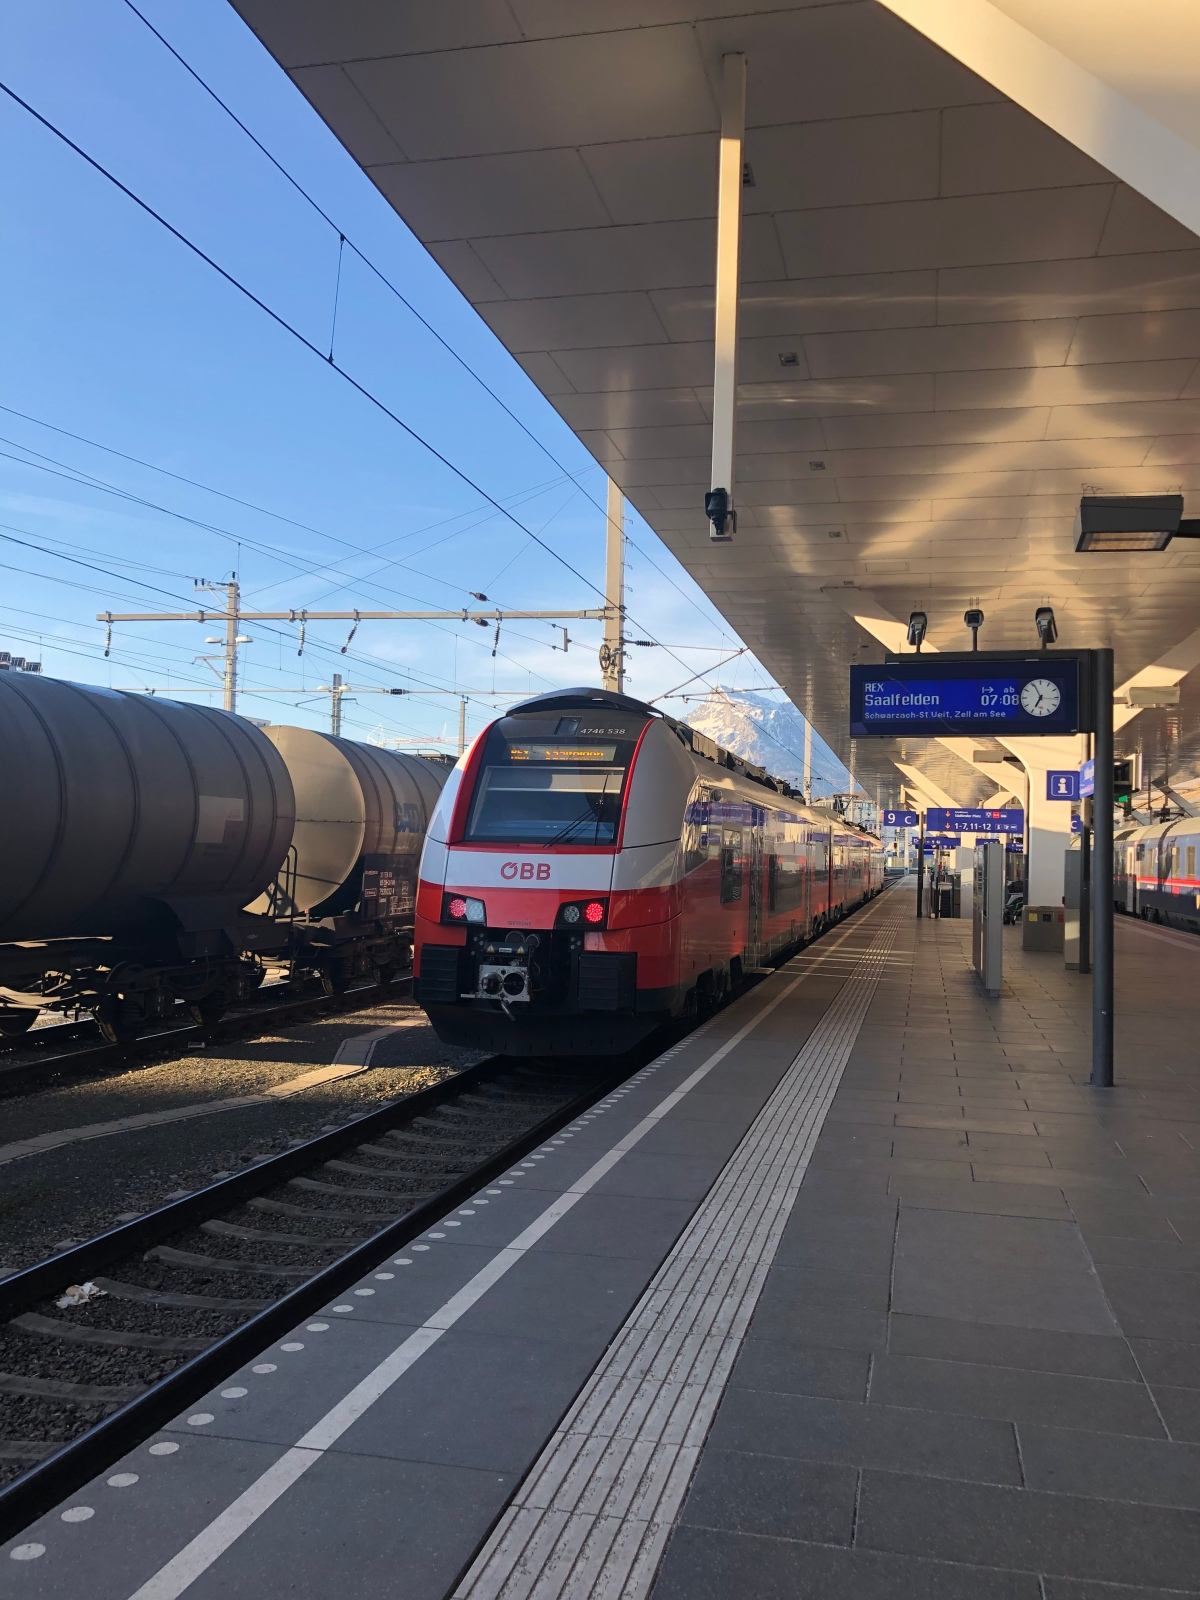 Friday Favorites:  Riding the trains in Europe